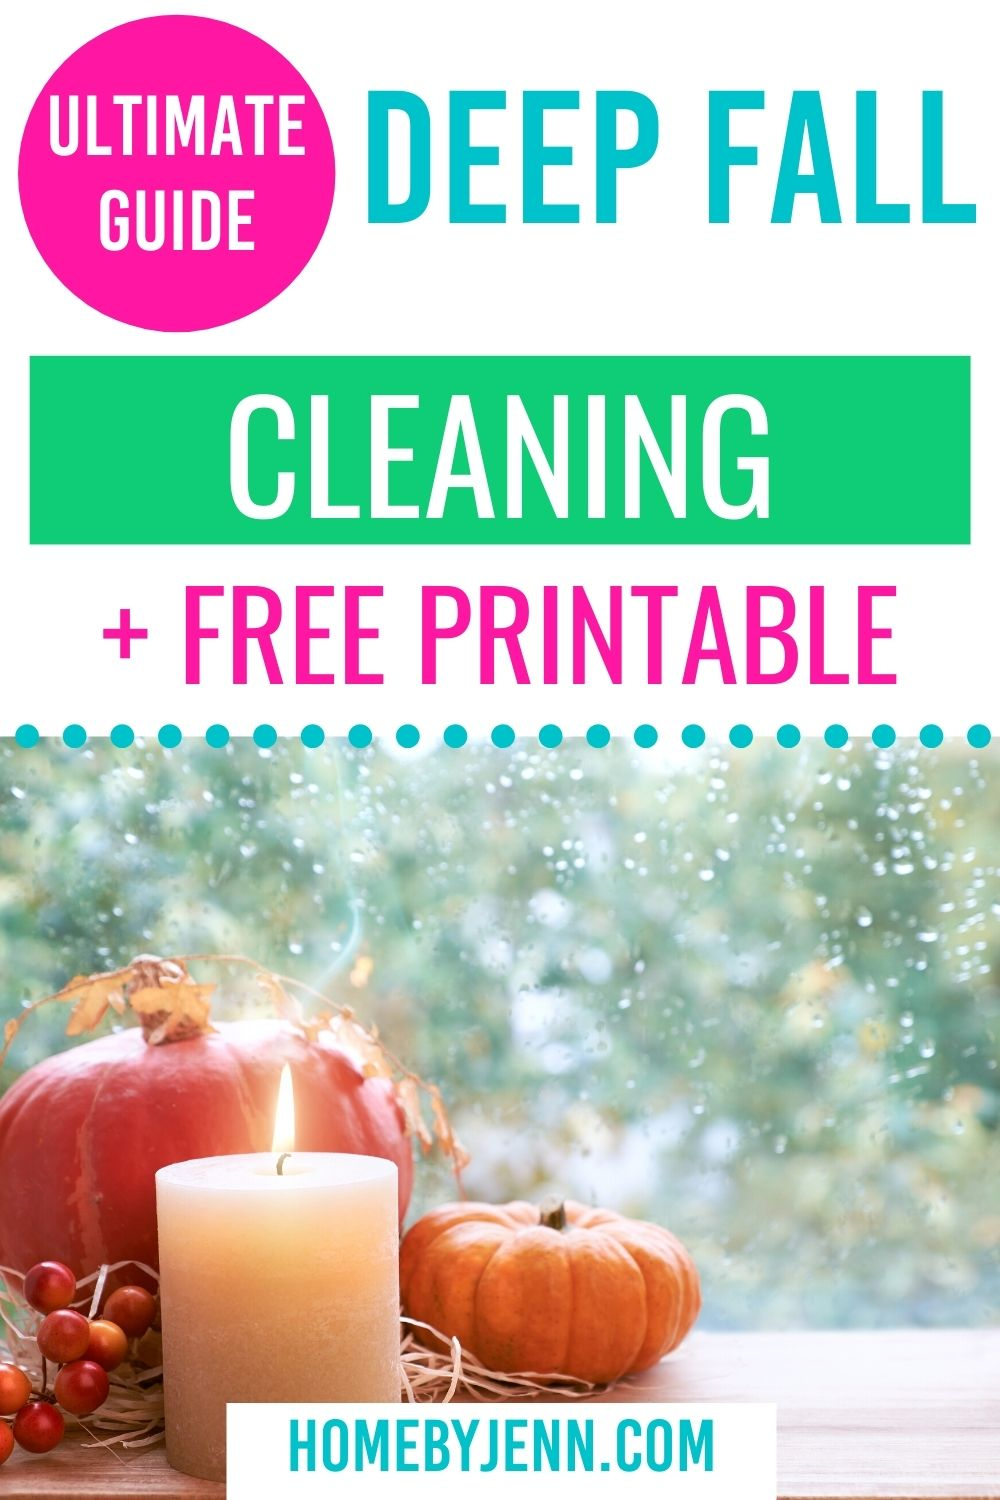 Now that the days are getting shorter and the weather is cooling it is time to think about your fall clean up. Follow my easy guide to tackle your home and be prepared for fall clean up. Fall cleaning guide you don't want to miss out on. #fall #cleaning #organizing #checklist #fallcleaningguide #whattoclean via @homebyjenn